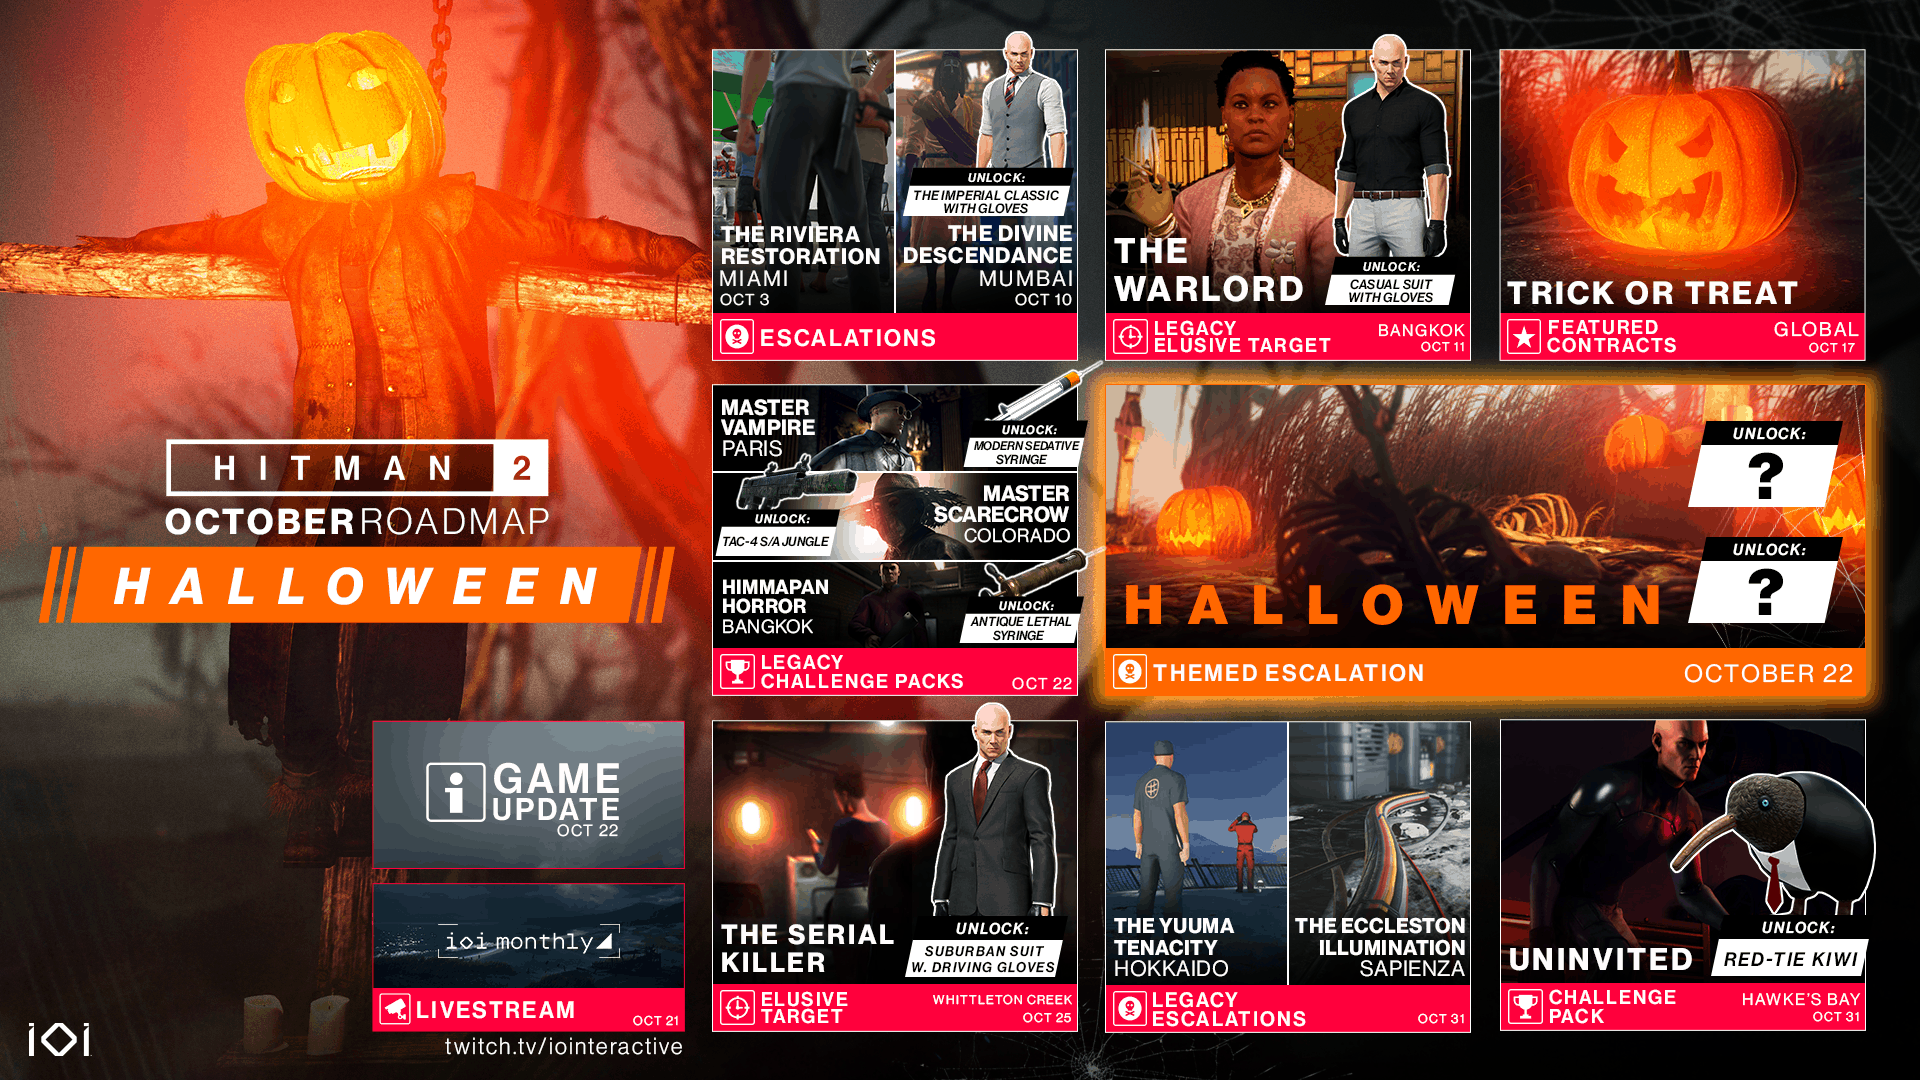 HITMAN 2 Free Content Updates Announced as Part of October Roadmap